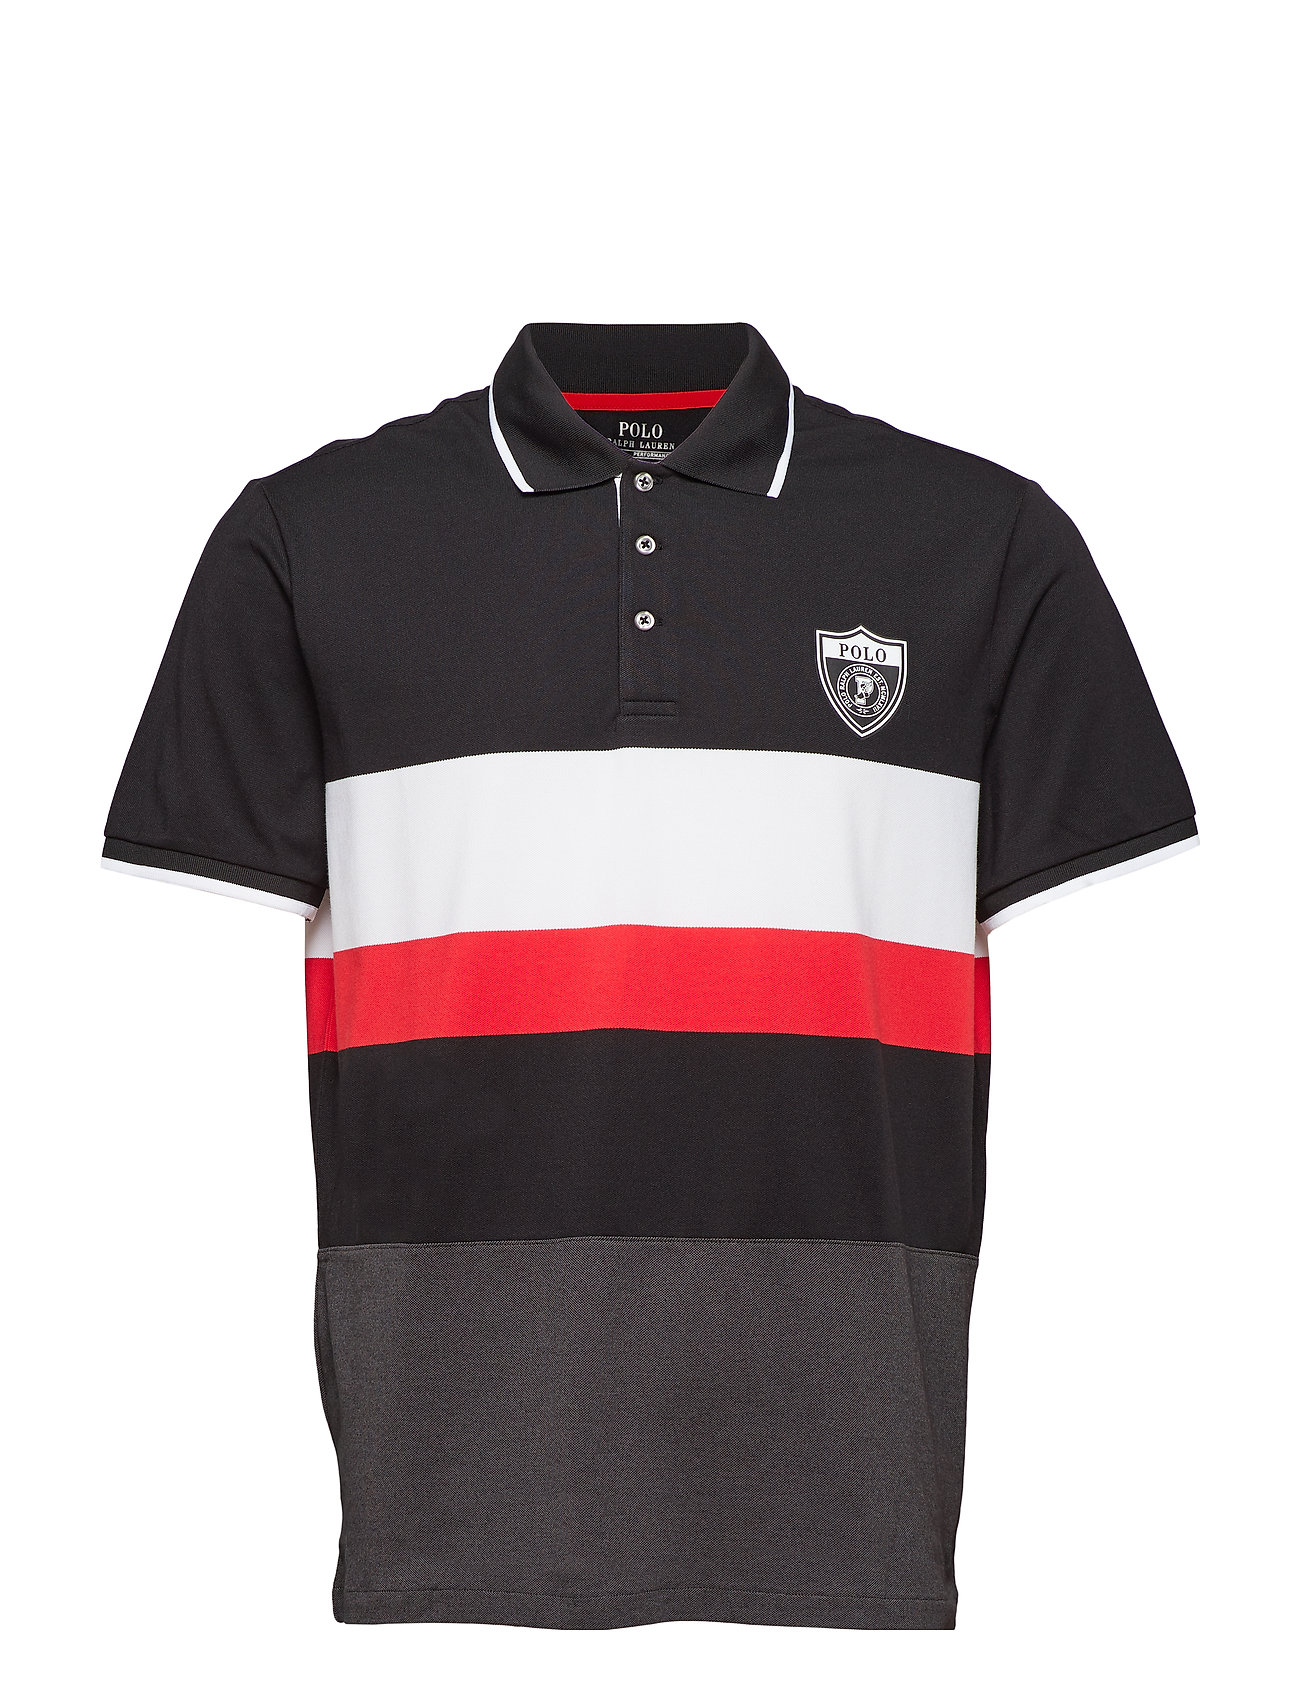 Polo Ralph Lauren SS POLO M2-SHORT SLEEVE-KNIT